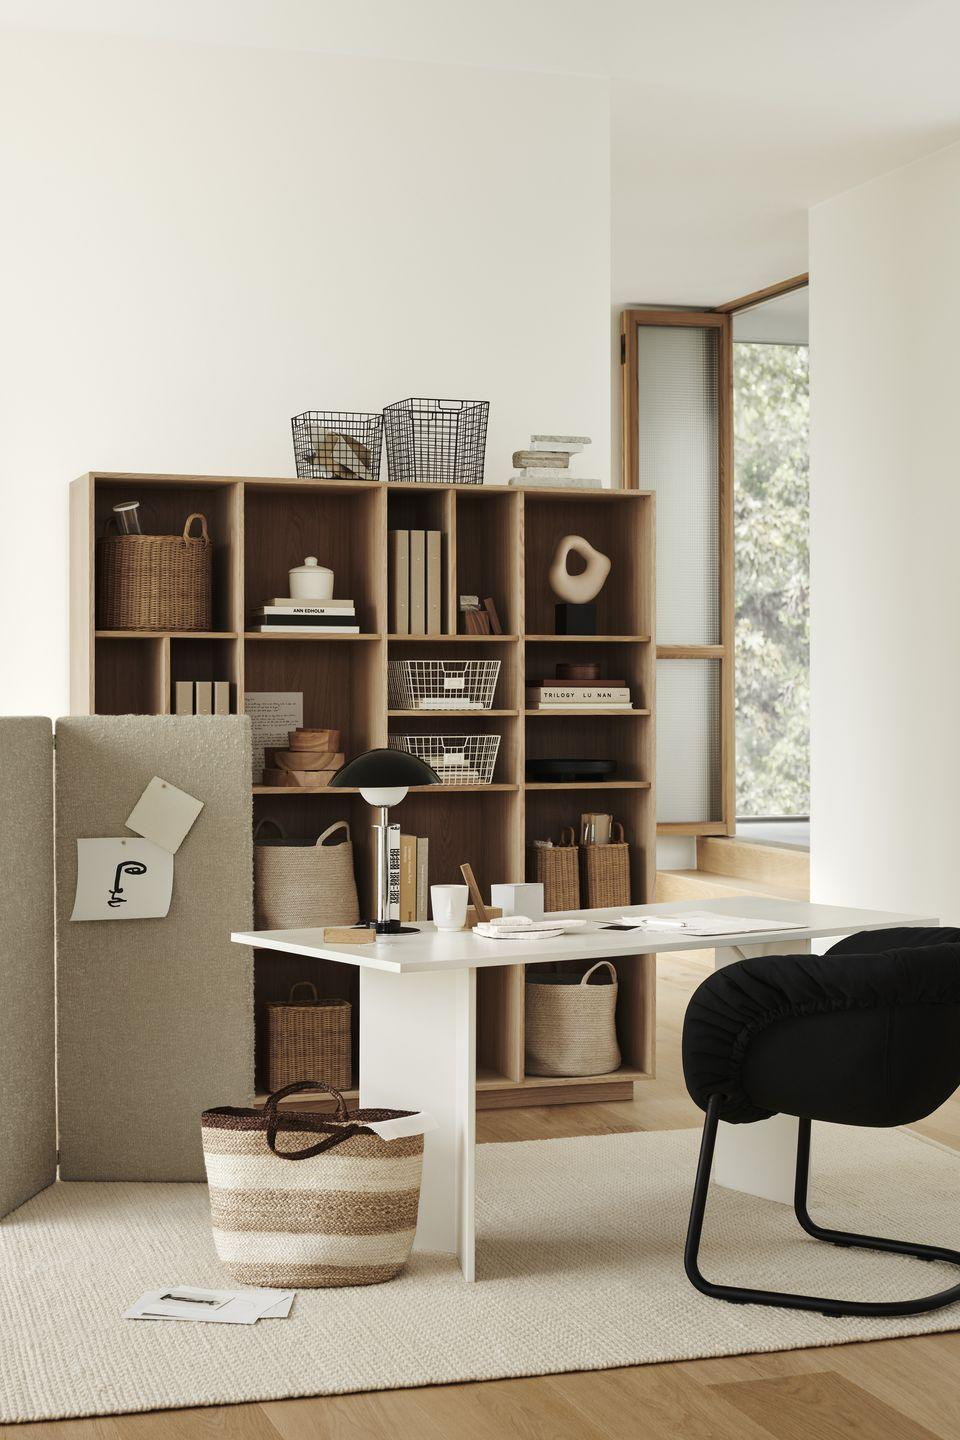 """<p>The home office has, of course, become more significant than ever before. With many of us kick-starting the new year working from home, H&M has all you need to upgrade your office space for less. </p><p>'Here we showcase a creative environment with a timeless, warm, minimalistic and personal expression, that shows how the home workspace can look as stylish as the rest of the home,' say the team at H&M Home. </p><p><a class=""""link rapid-noclick-resp"""" href=""""https://go.redirectingat.com?id=127X1599956&url=https%3A%2F%2Fwww2.hm.com%2Fen_gb%2Fhome.html&sref=https%3A%2F%2Fwww.housebeautiful.com%2Fuk%2Flifestyle%2Fshopping%2Fg35116386%2Fhandm-home-spring%2F"""" rel=""""nofollow noopener"""" target=""""_blank"""" data-ylk=""""slk:SHOP H&M HOME"""">SHOP H&M HOME</a> </p>"""